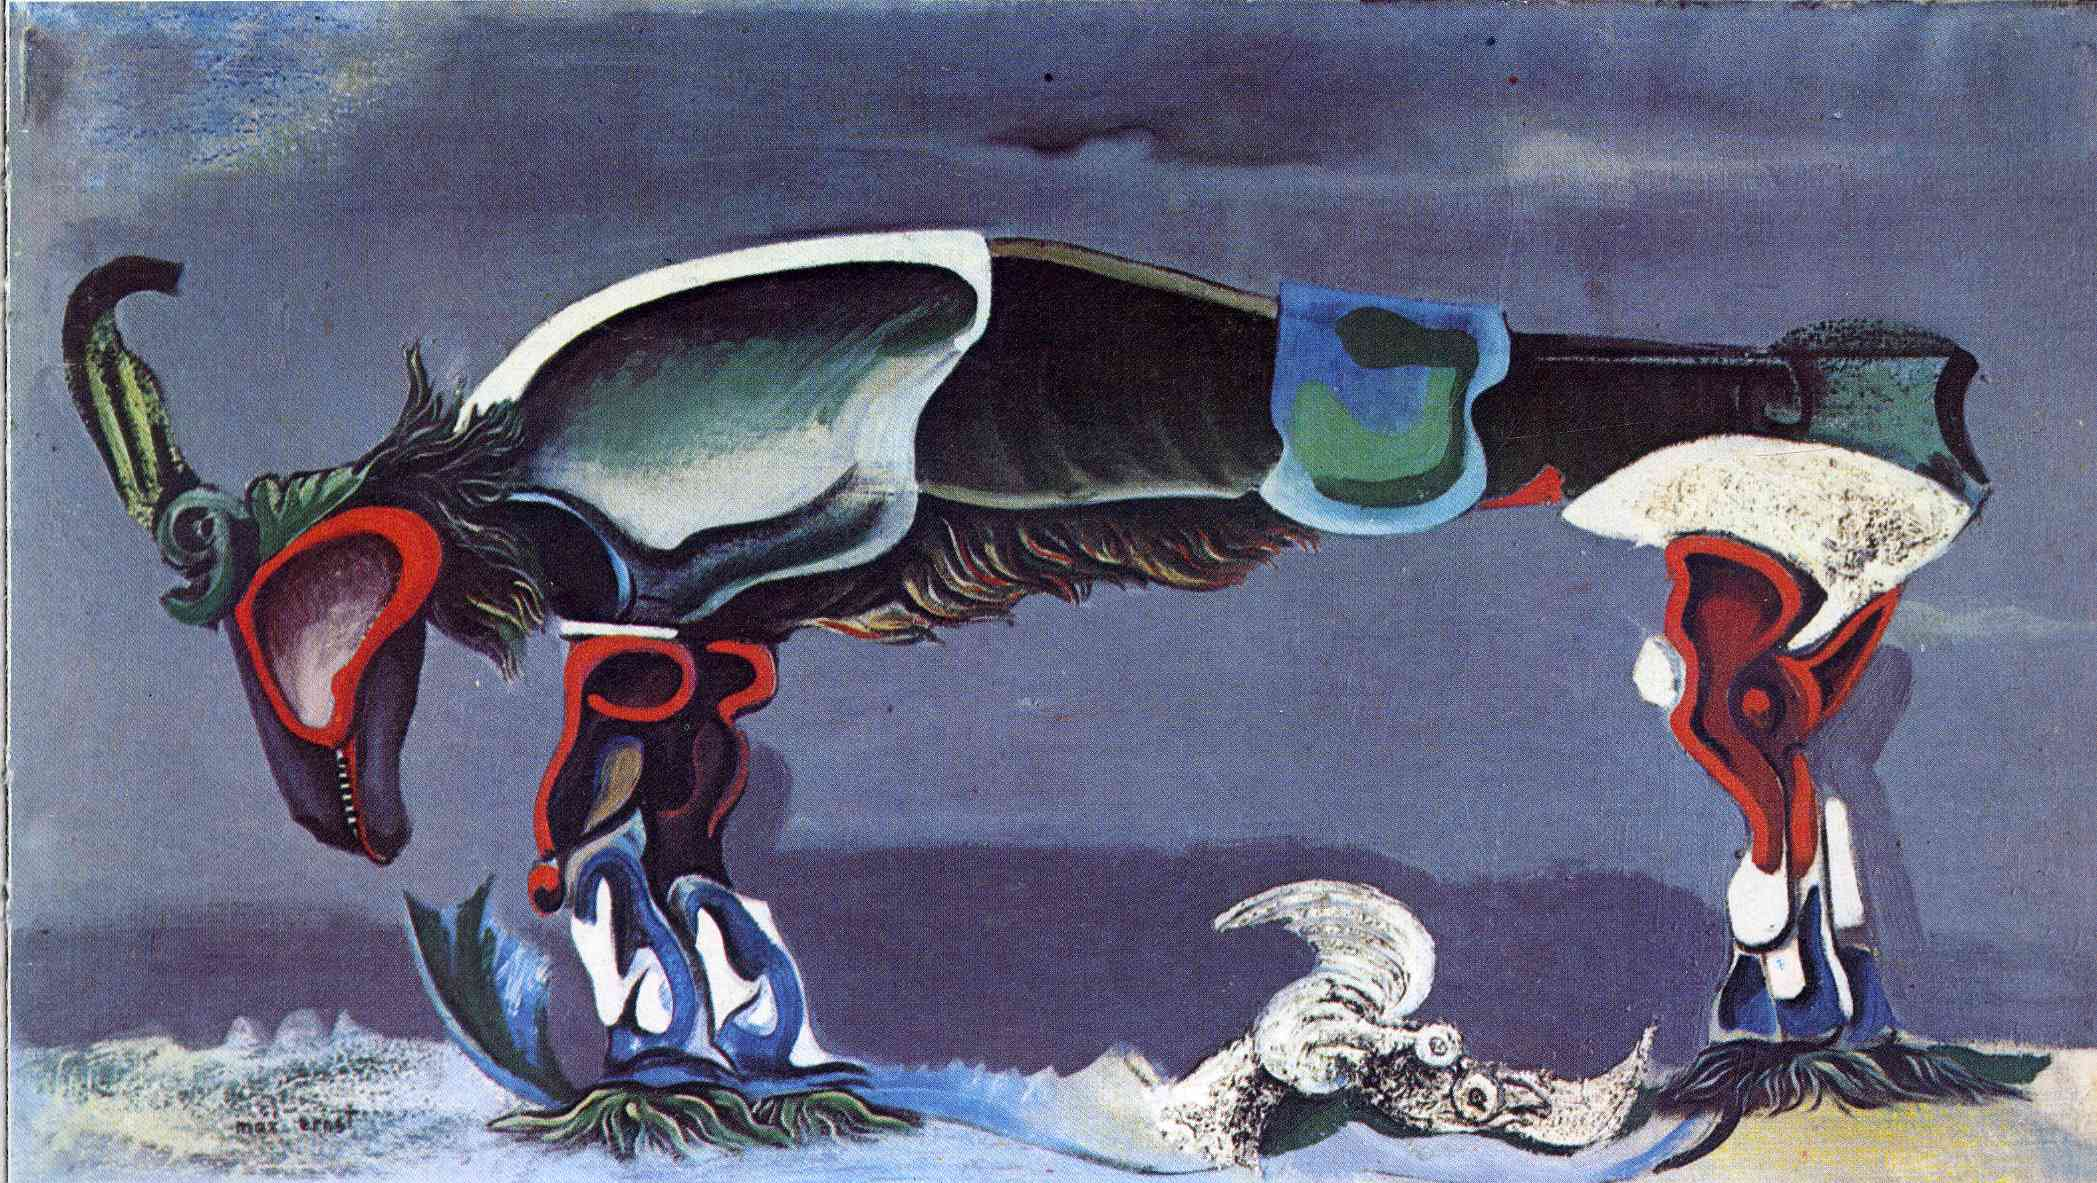 Max Ernst. The Beautiful Thing. 1925.